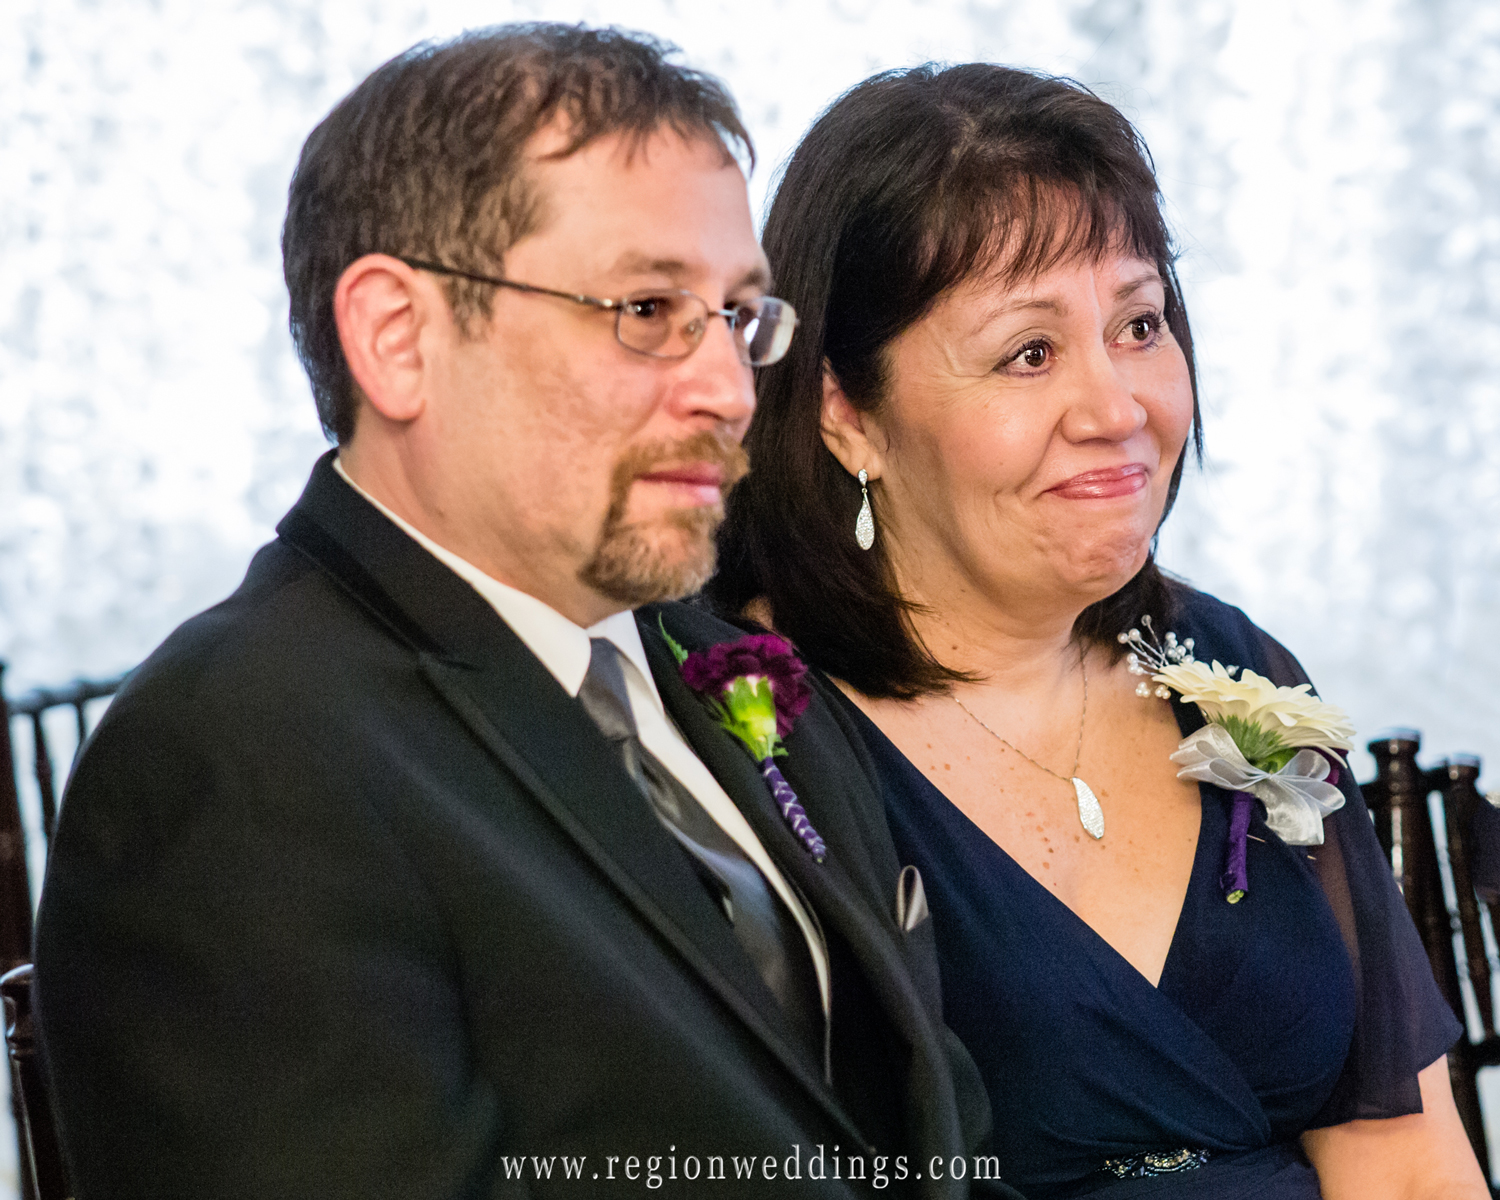 Parents of the bride get emotional in this candid wedding ceremony photo from Northwest Indiana wedding photographer Steve Vansak.